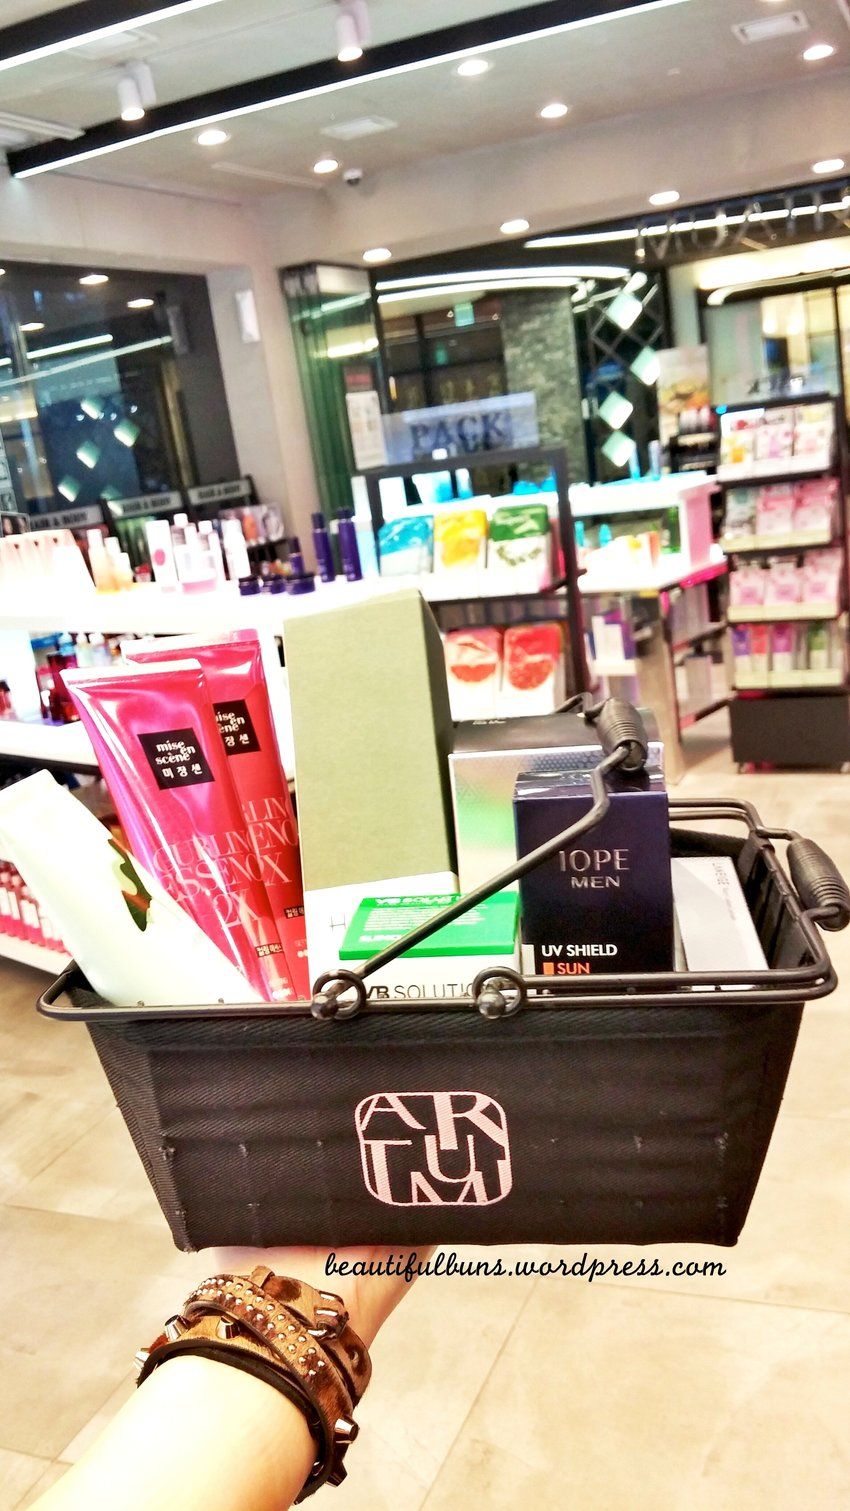 Throwback to my last Korea trip: On my usual shopping binge at Aritaum stocking up on stuff like Laneige, Hanyul, IOPE, Mise En Scene, Mamonde and more :D